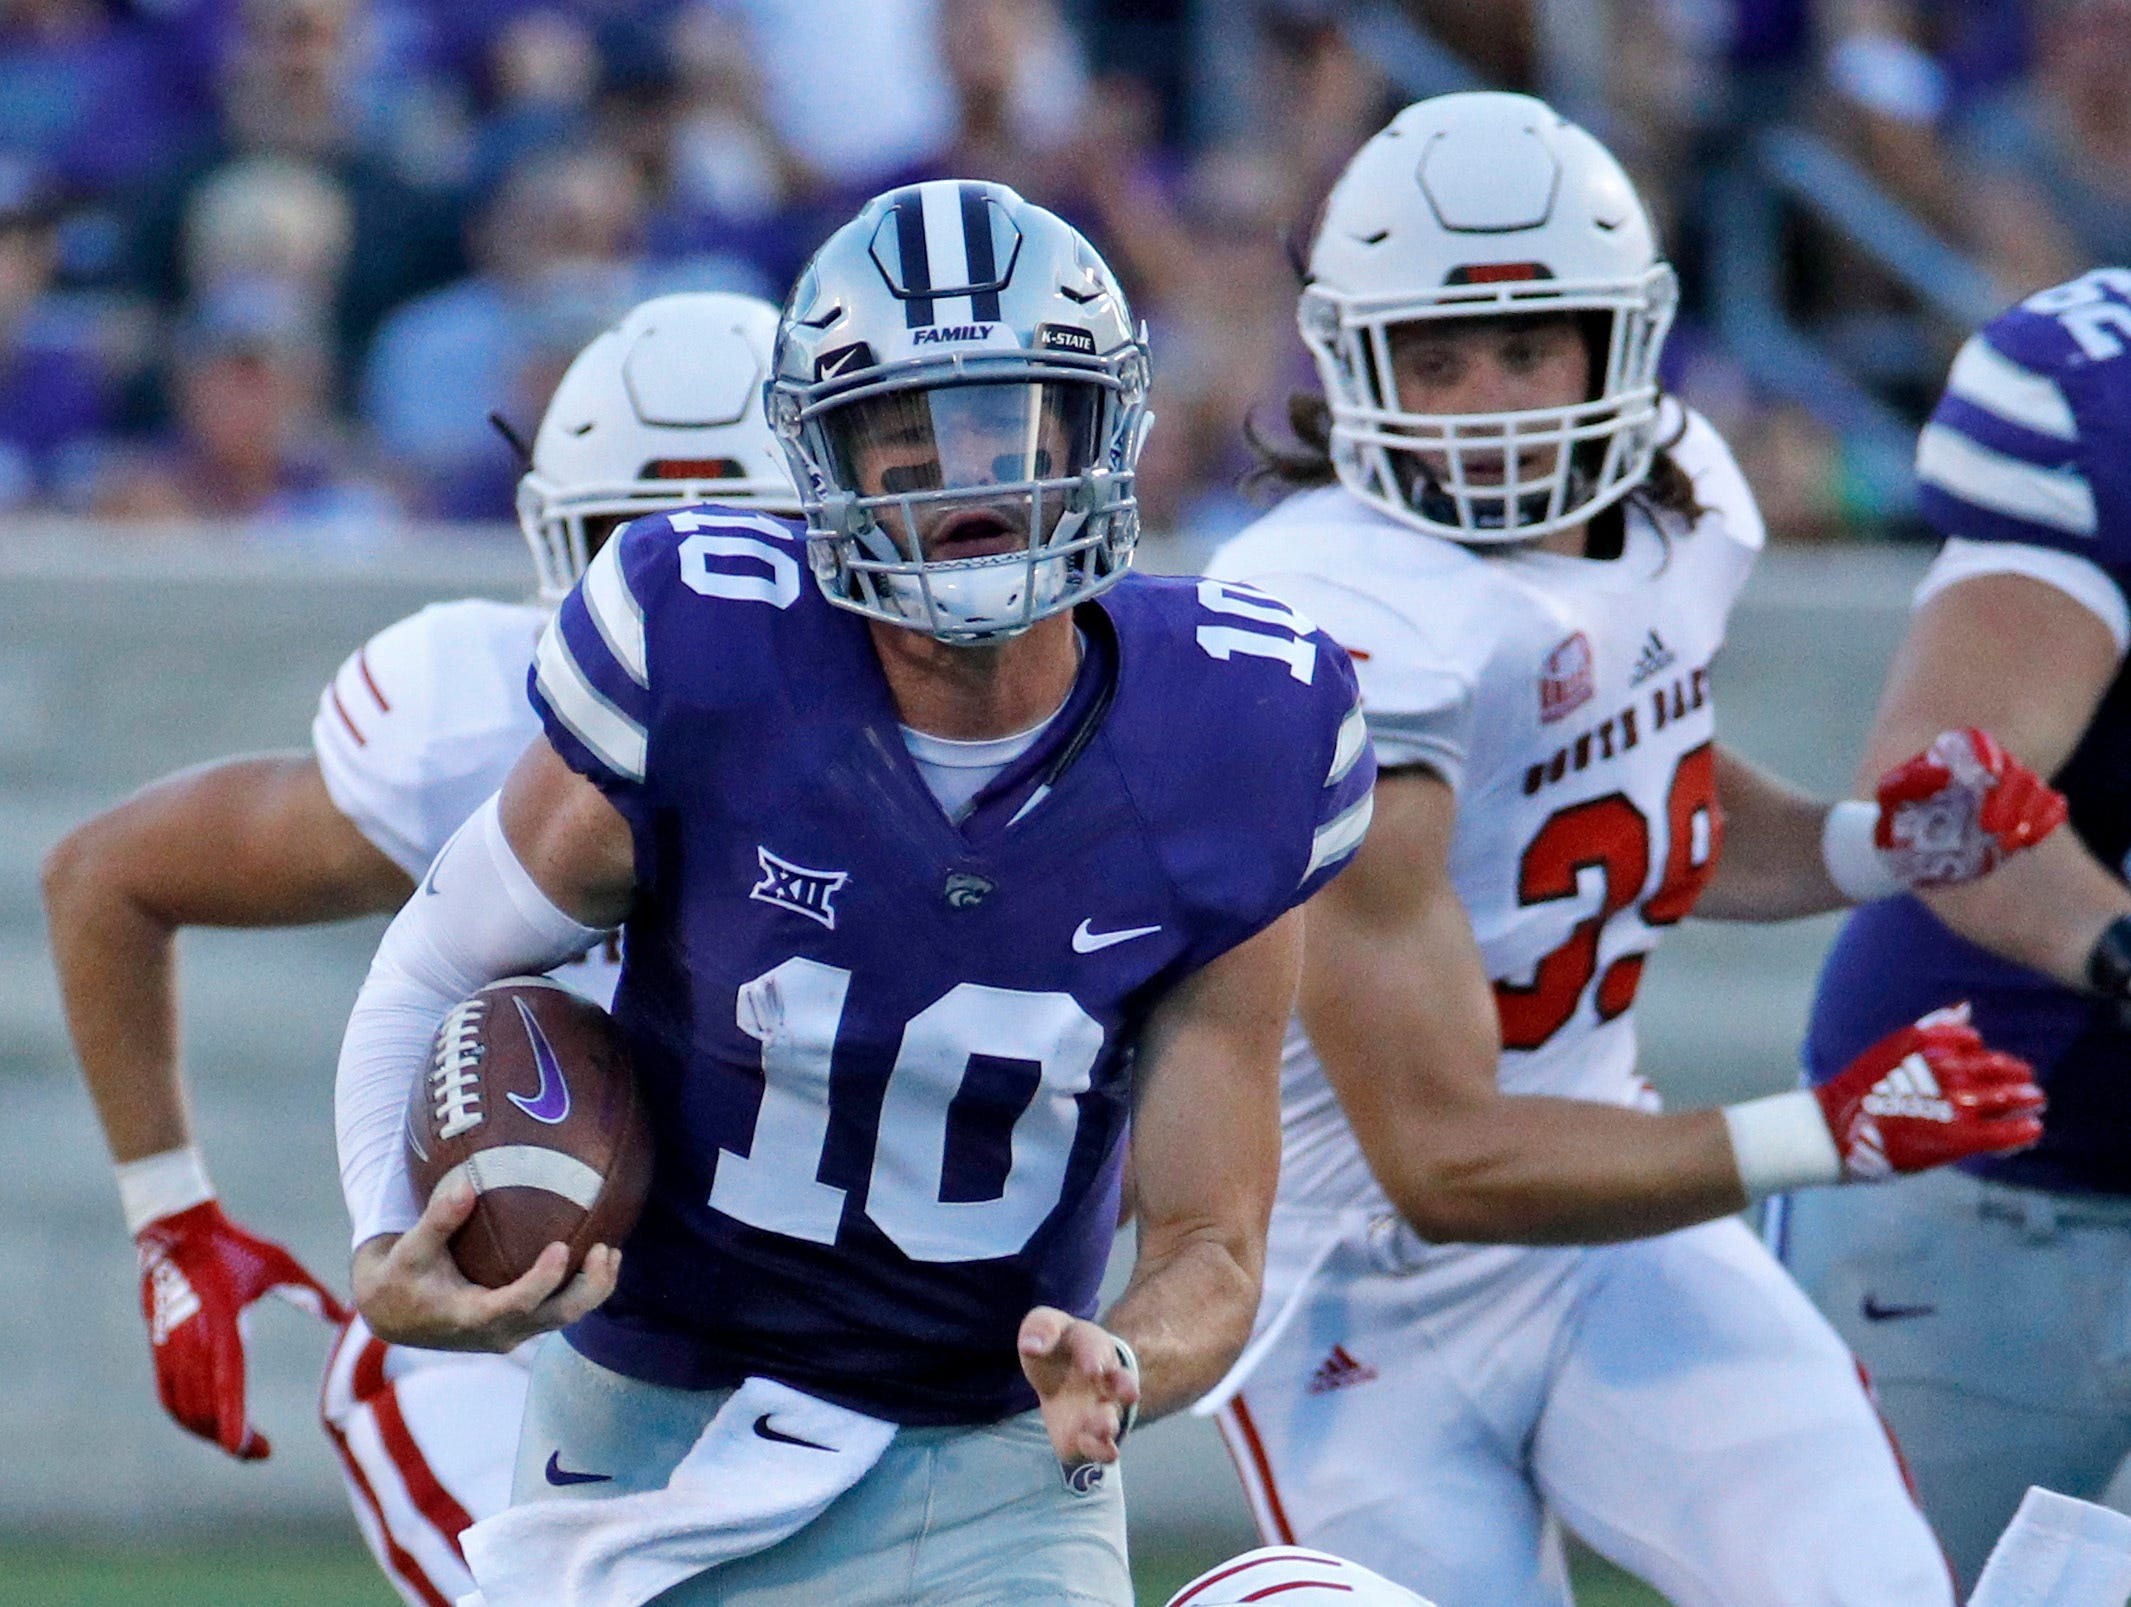 Kansas State quarterback Skylar Thompson (10) gets past South Dakota defensive back Elijah Reed (4) as he runs for a first down during the first half of an NCAA college football game Saturday, Sept. 1, 2018, in Manhattan, Kan. (AP Photo/Charlie Riedel)